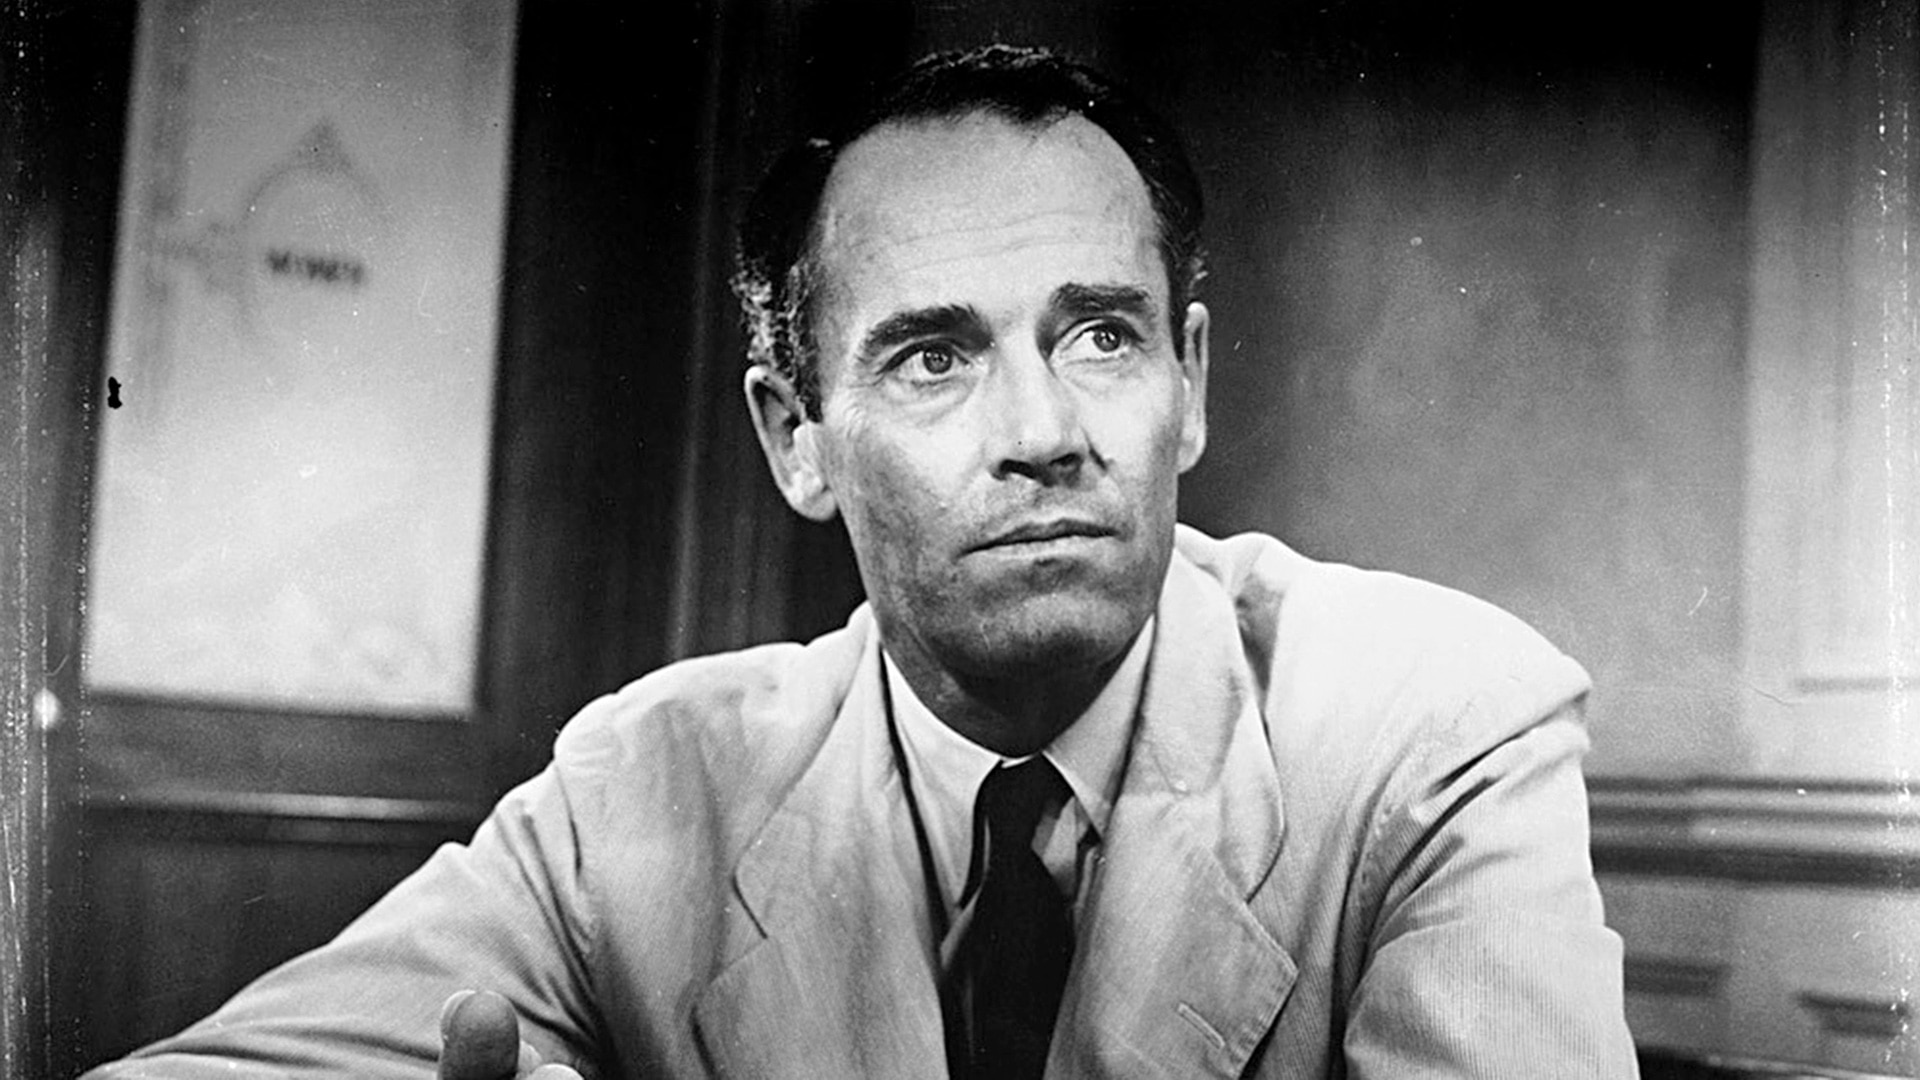 leadership in twelve angry men by sidney lumet Director: sidney lumet a puerto rican youth is on trial for murder, accused of knifing his father to death the twelve jurors retire to the jury room, having been admonished that the defendant is innocent until proven guilty beyond a reasonable doubt.